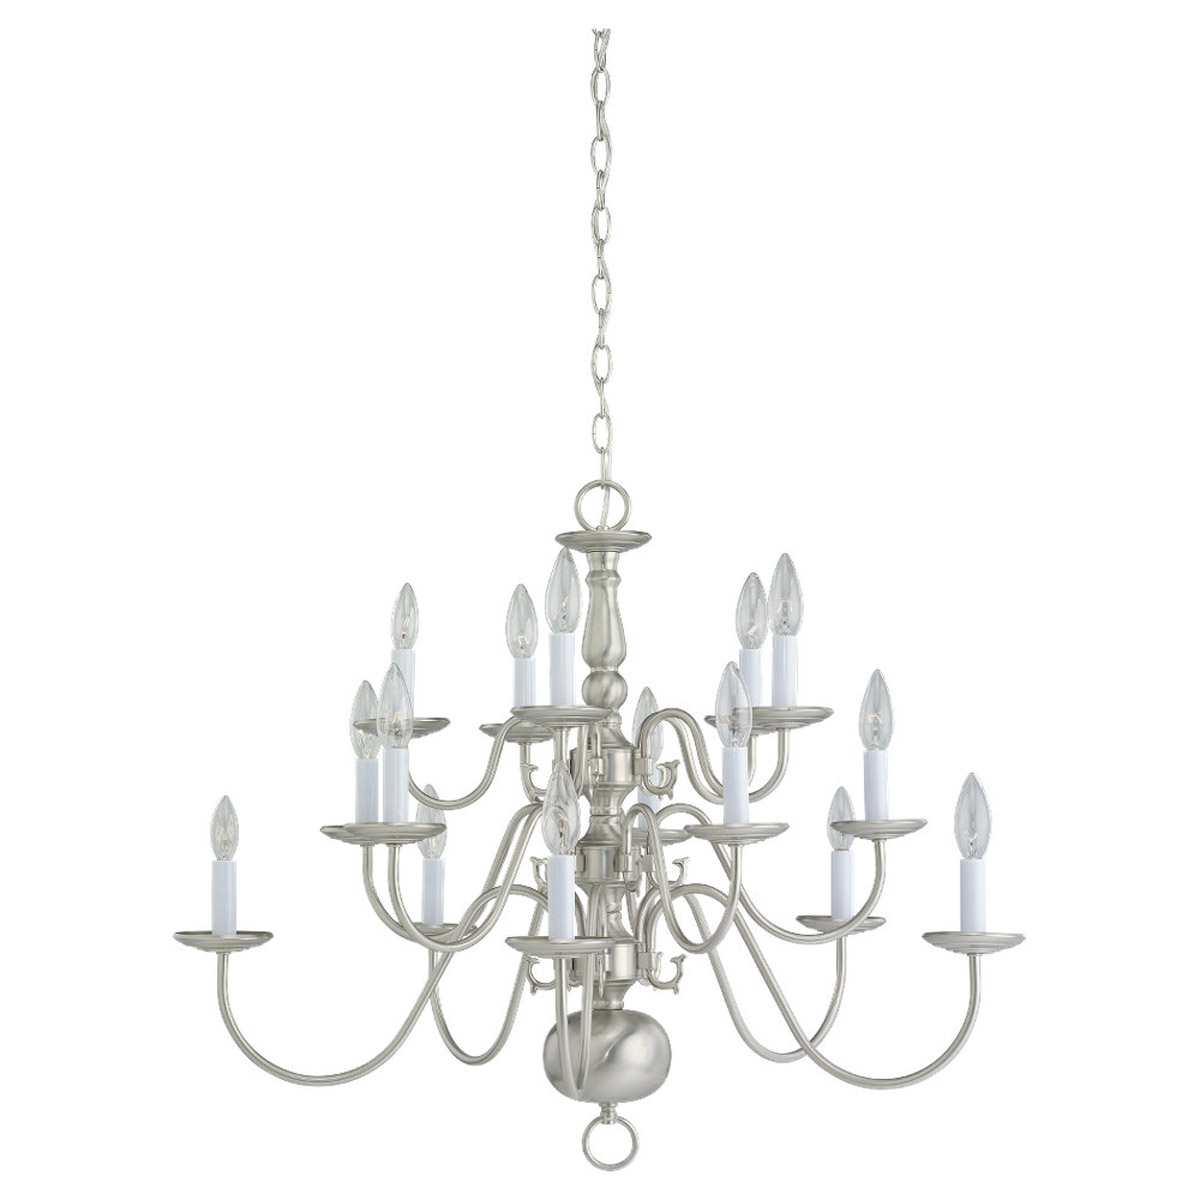 Sea Gull Lighting Traditional 15 Light Chandelier in Brushed Nickel 3414-962